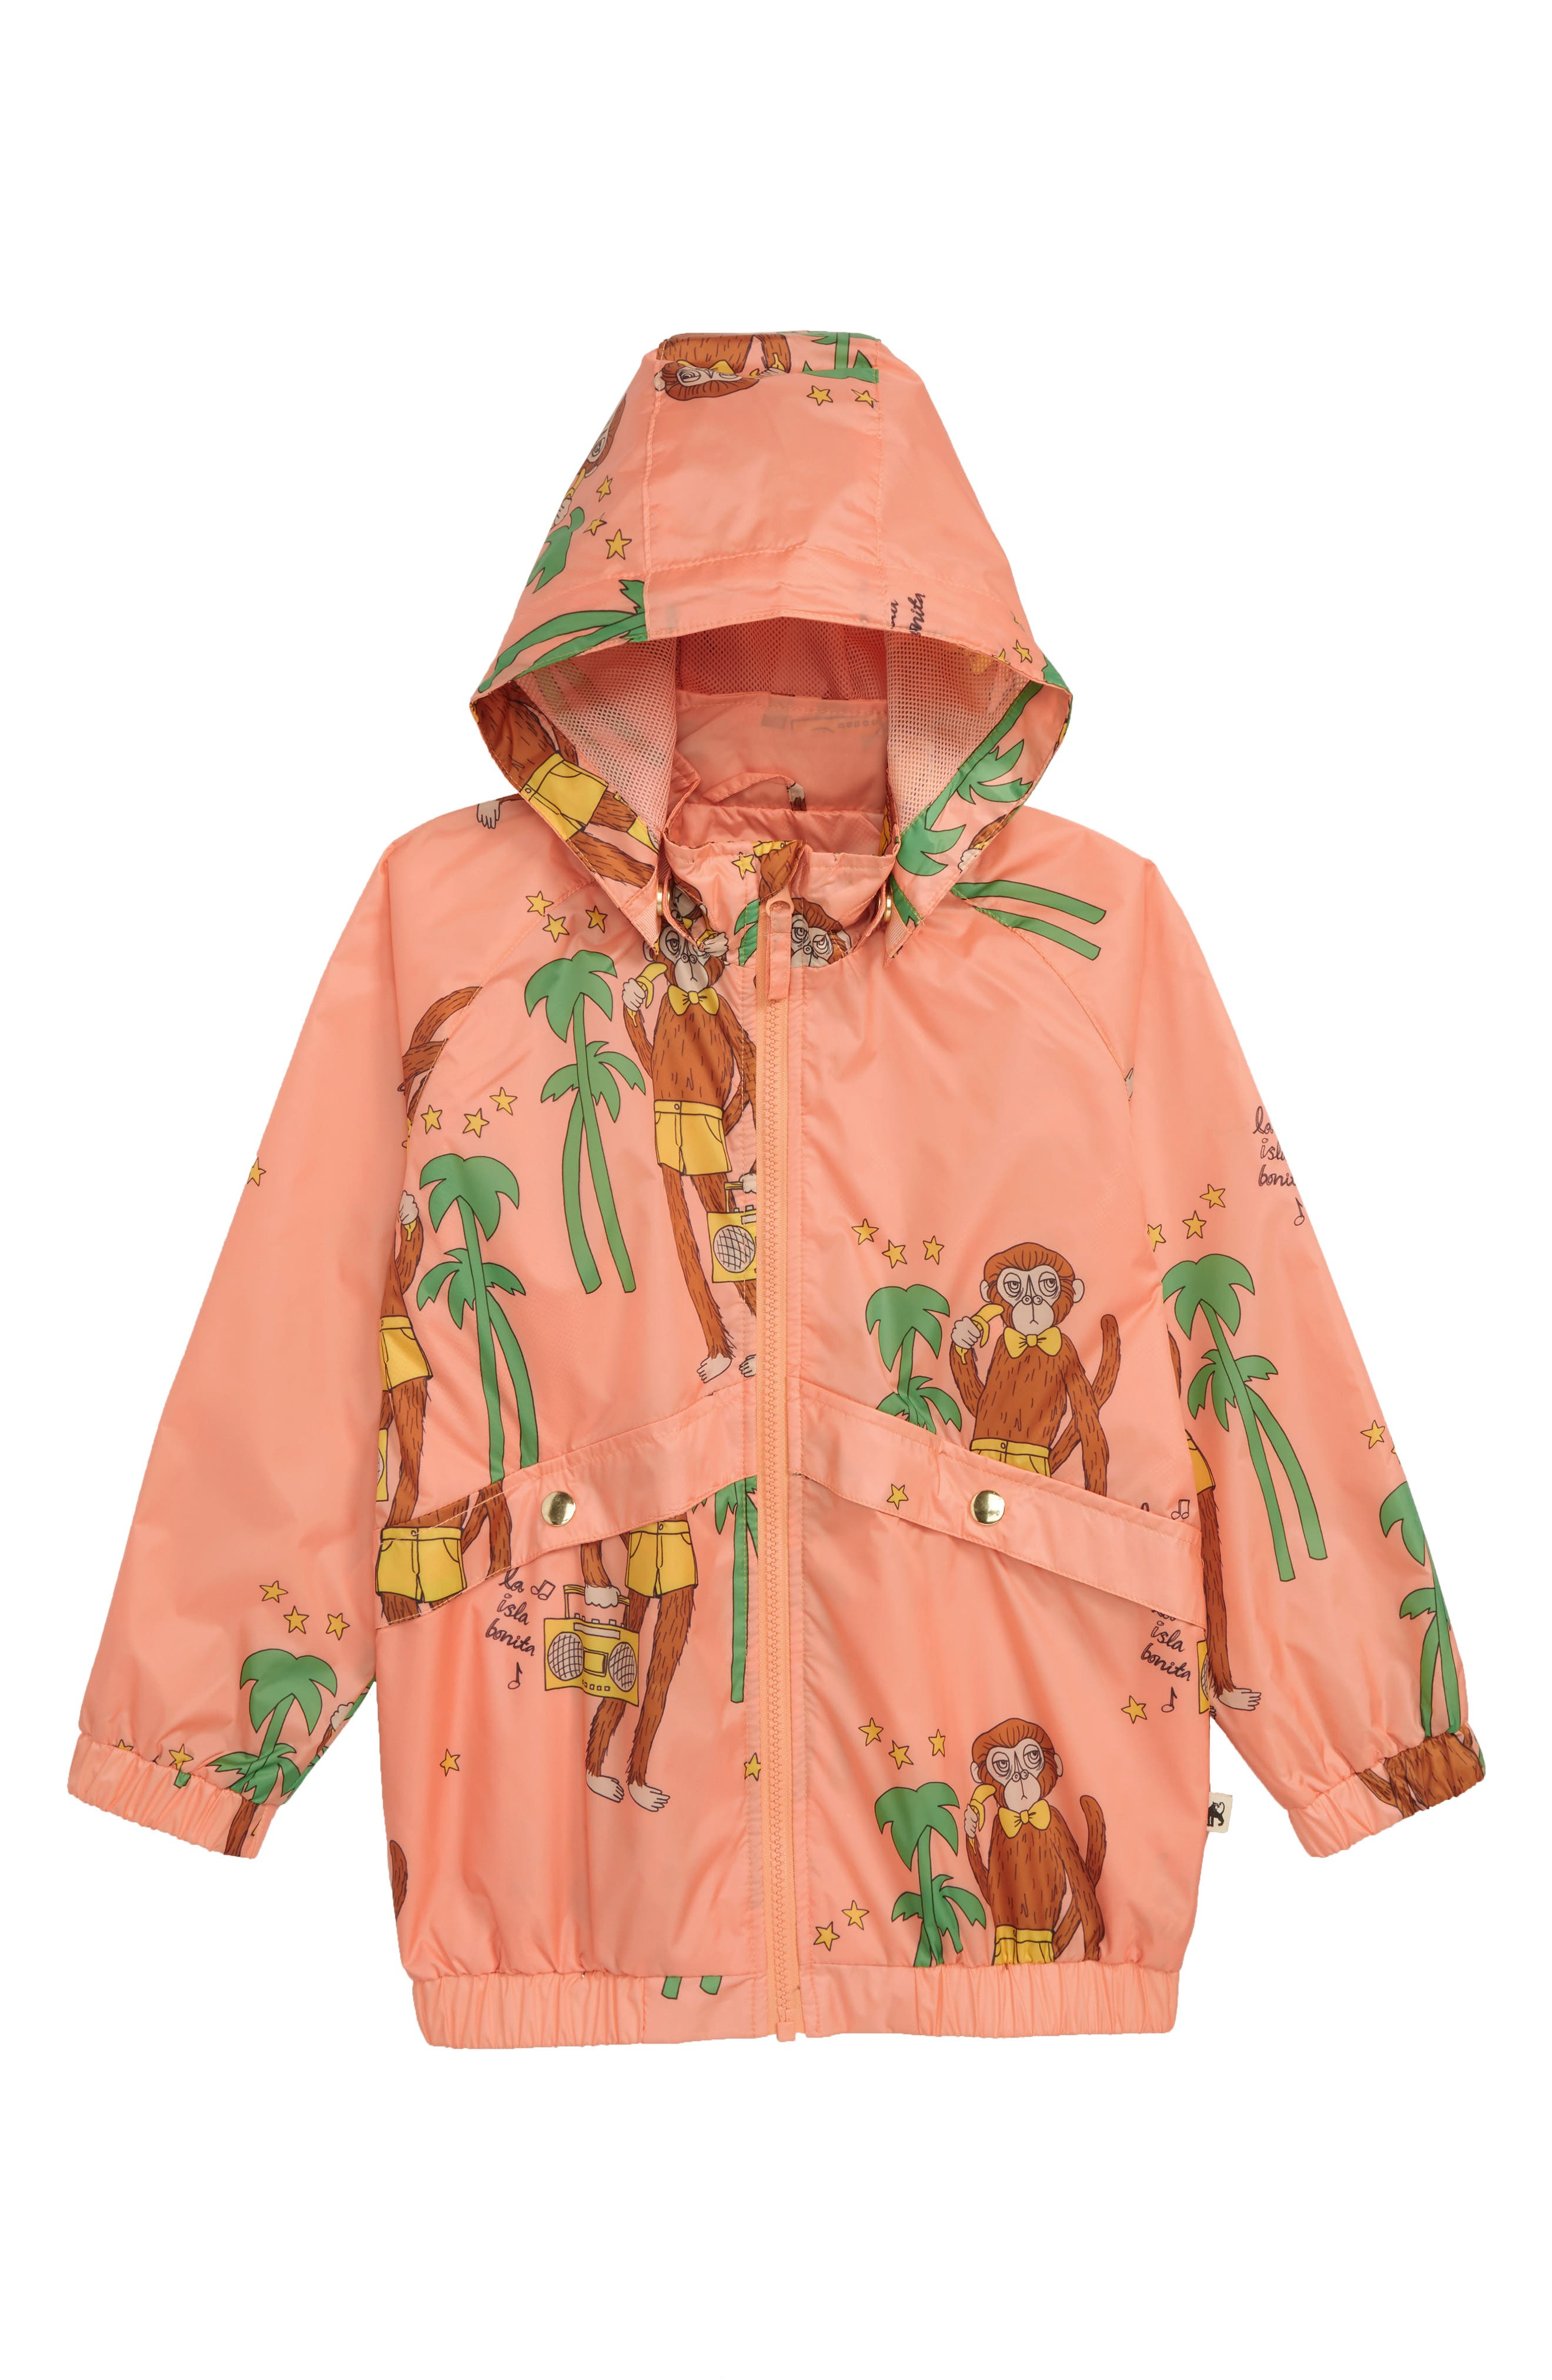 Cool Monkey Water Repellent Hooded Windbreaker,                             Main thumbnail 1, color,                             PINK